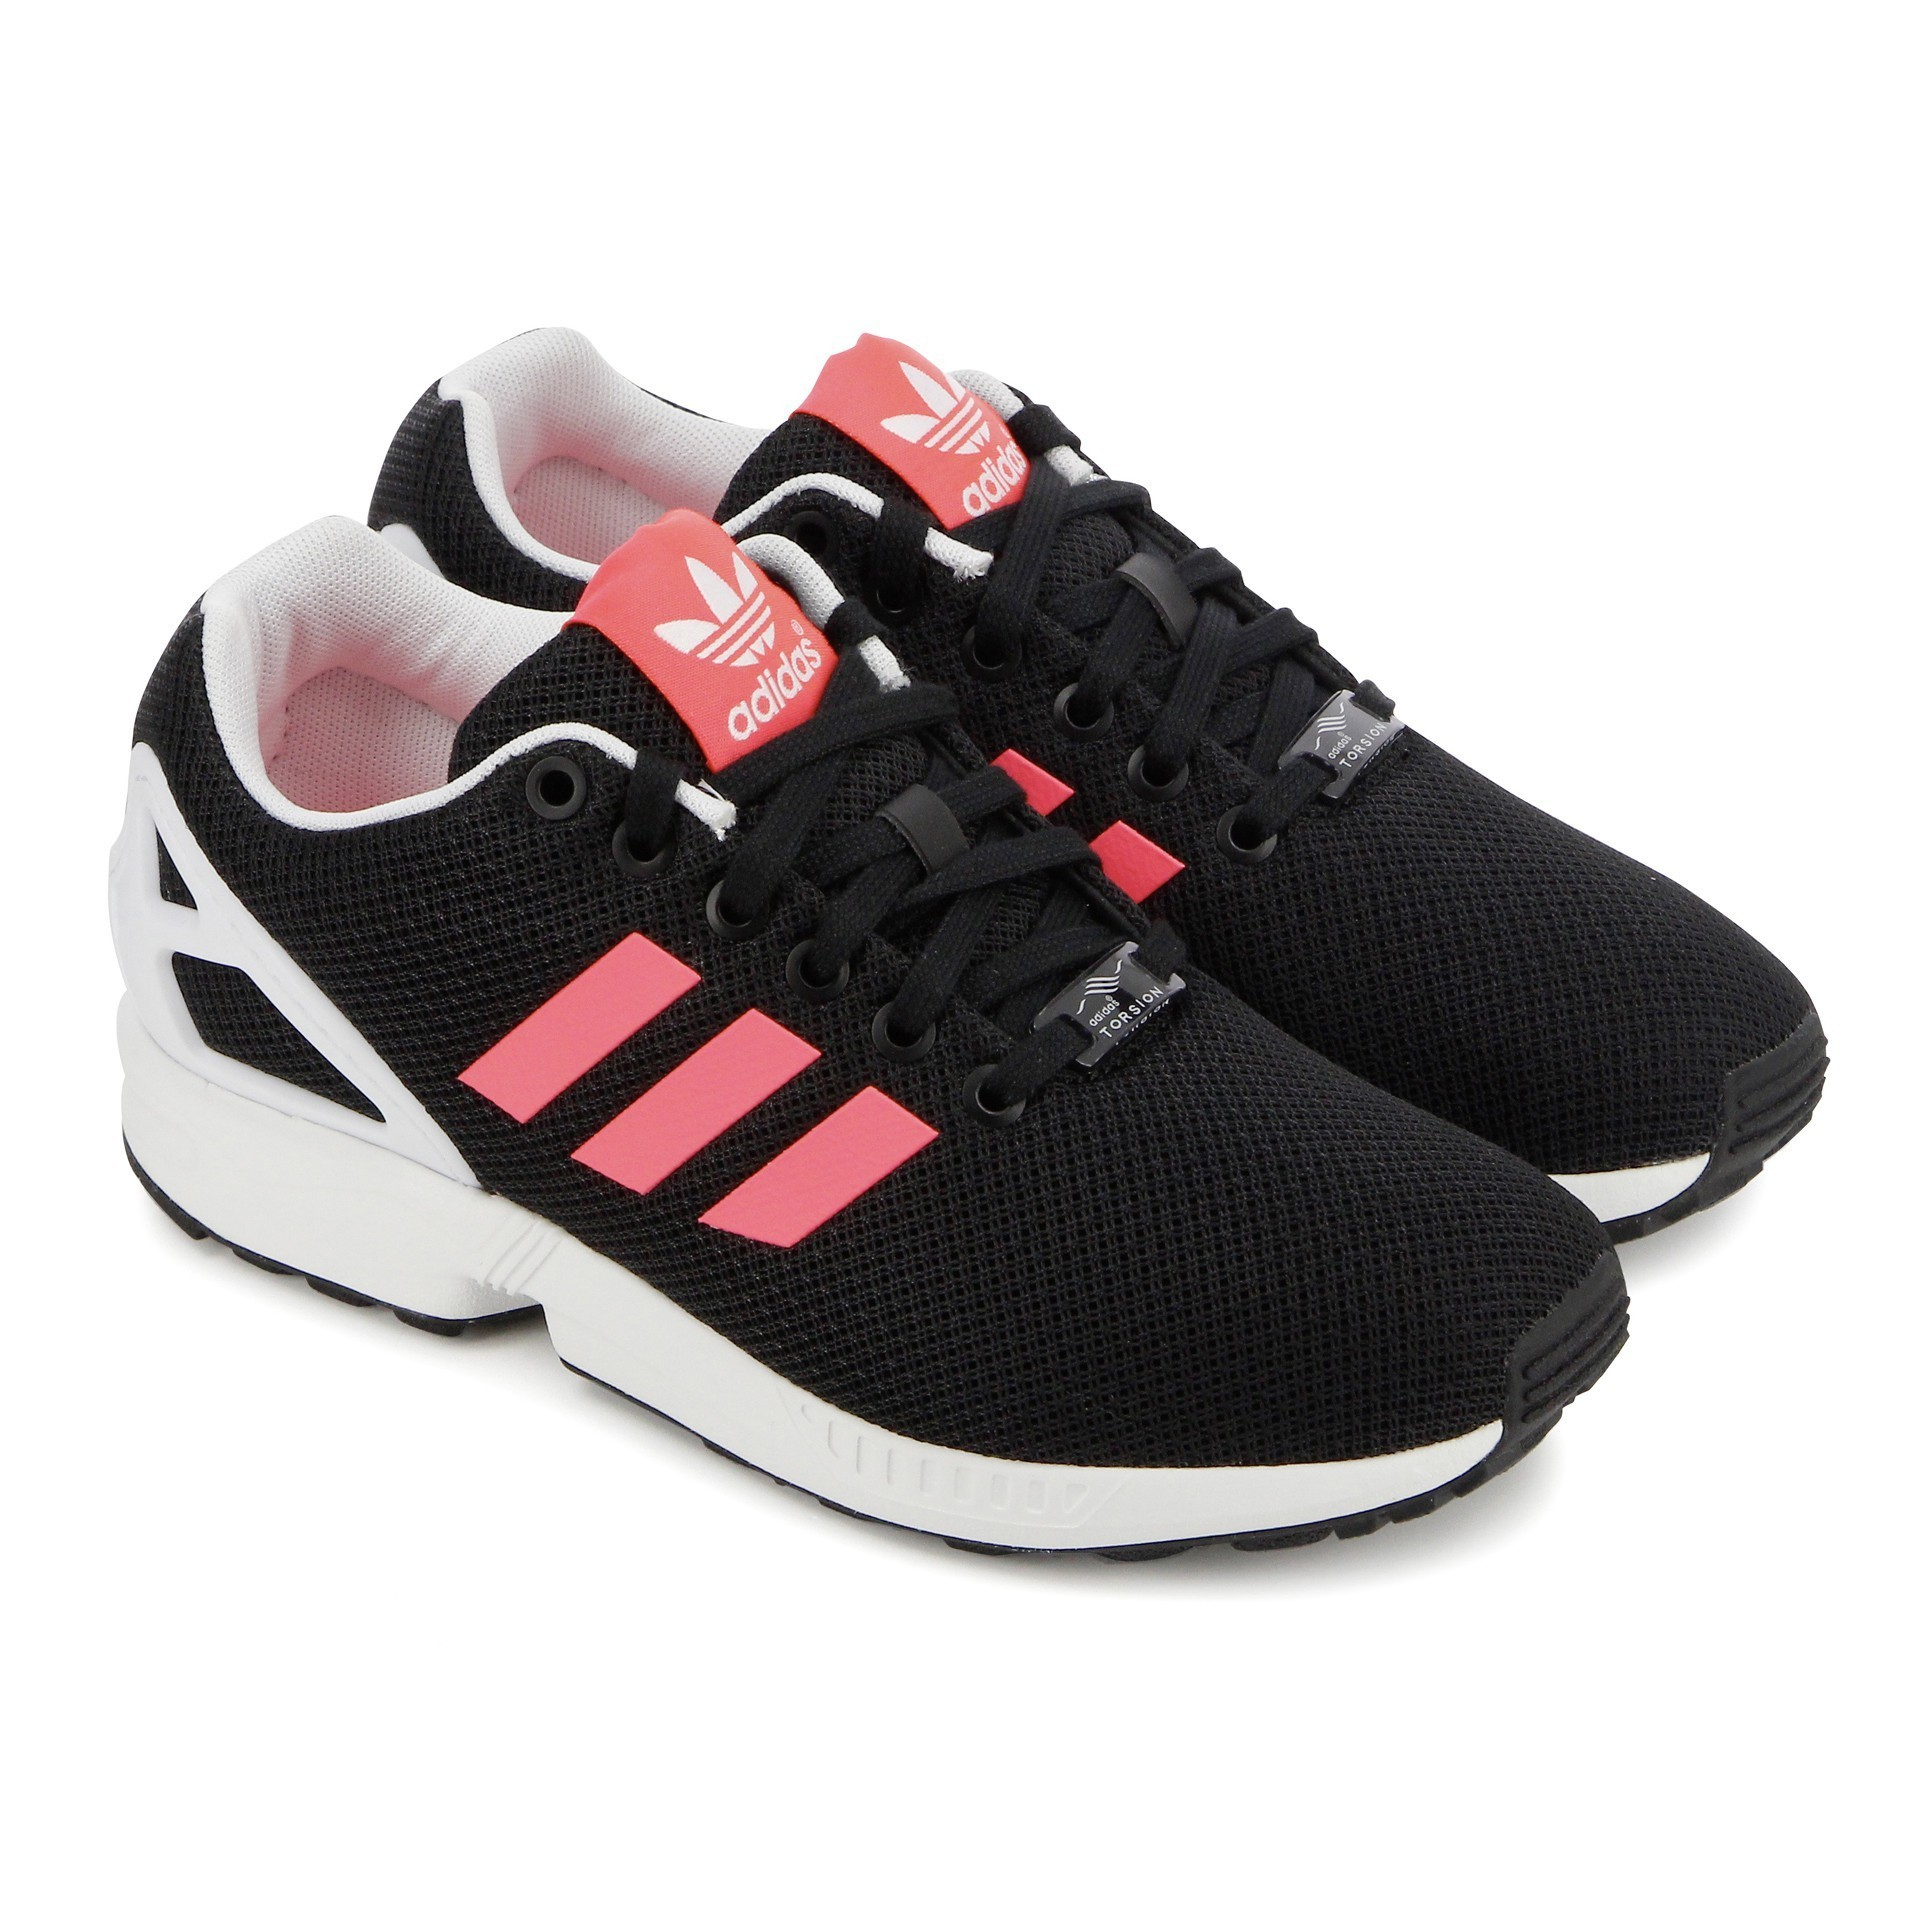 adidas zx flux femme rose Off 54% - www.bashhguidelines.org